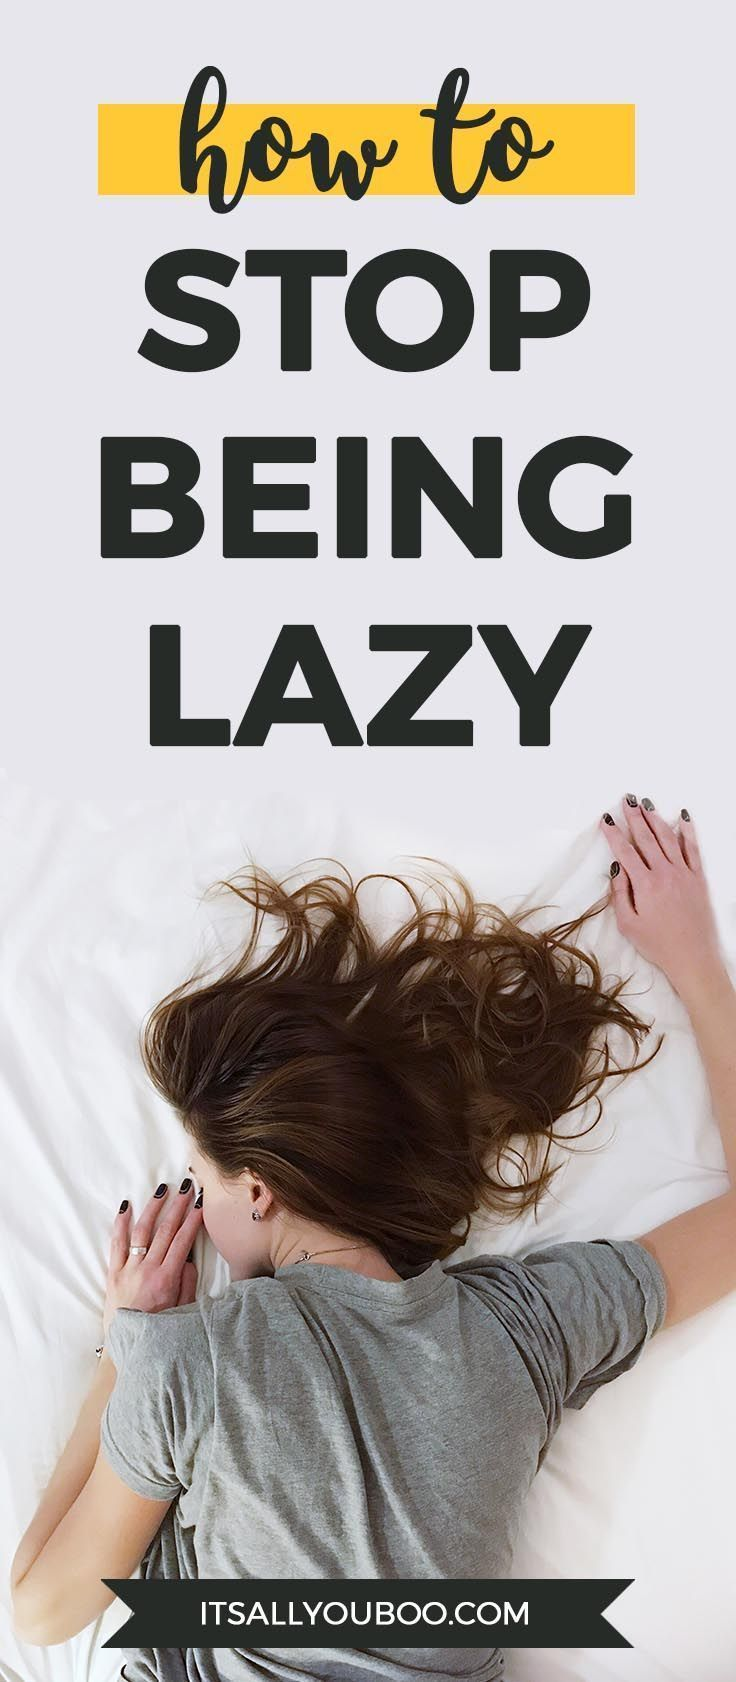 0abcb897500c063ea24ebf9012eca8b6 - How To Get Out Of The Habit Of Being Lazy